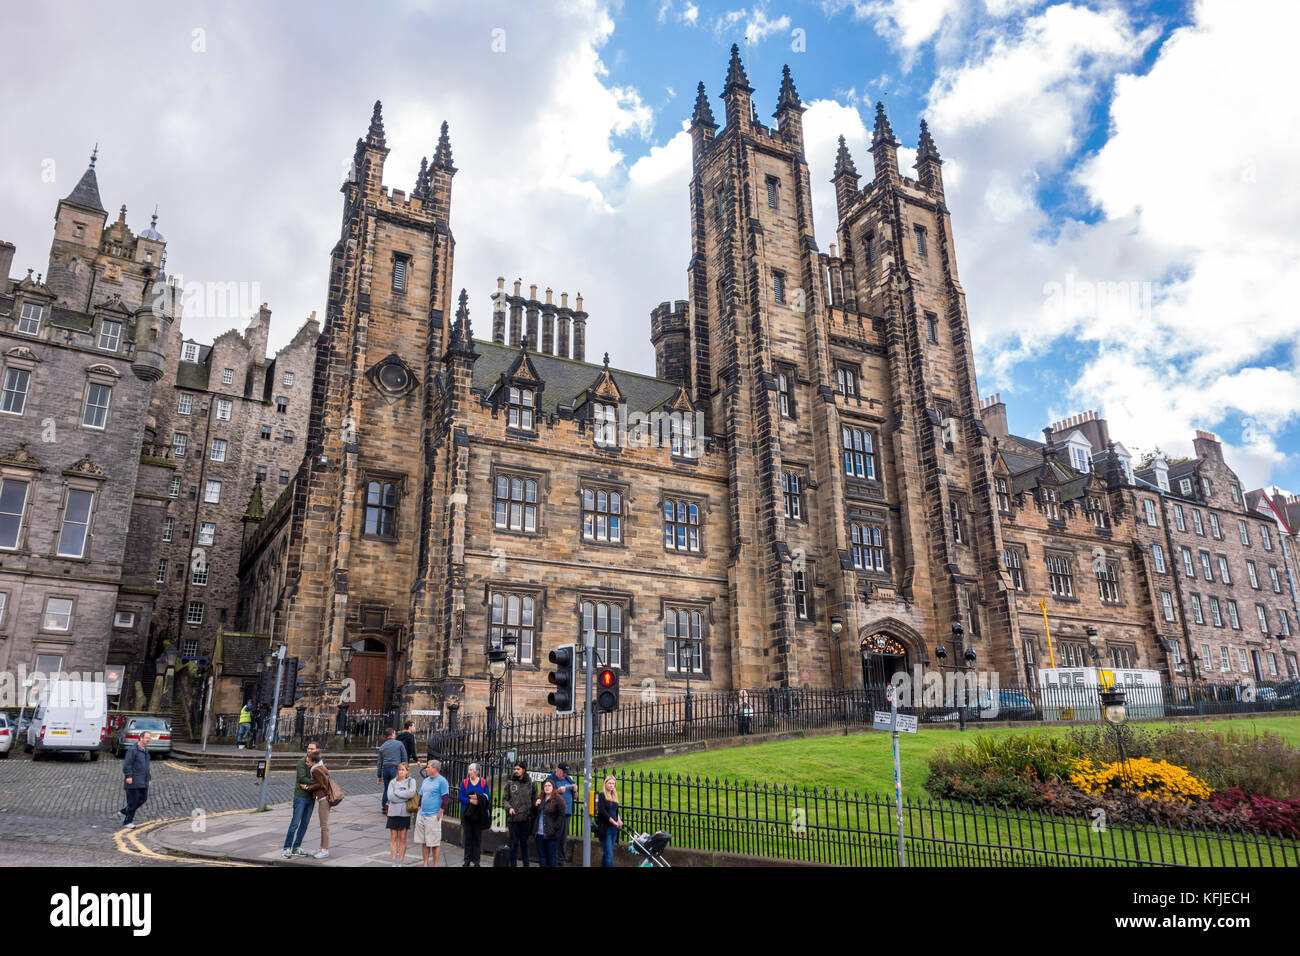 General Assembly Hall and New College, The University of Edinburgh on the Mound hill in Edinburgh, Scotland, UK - Stock Image